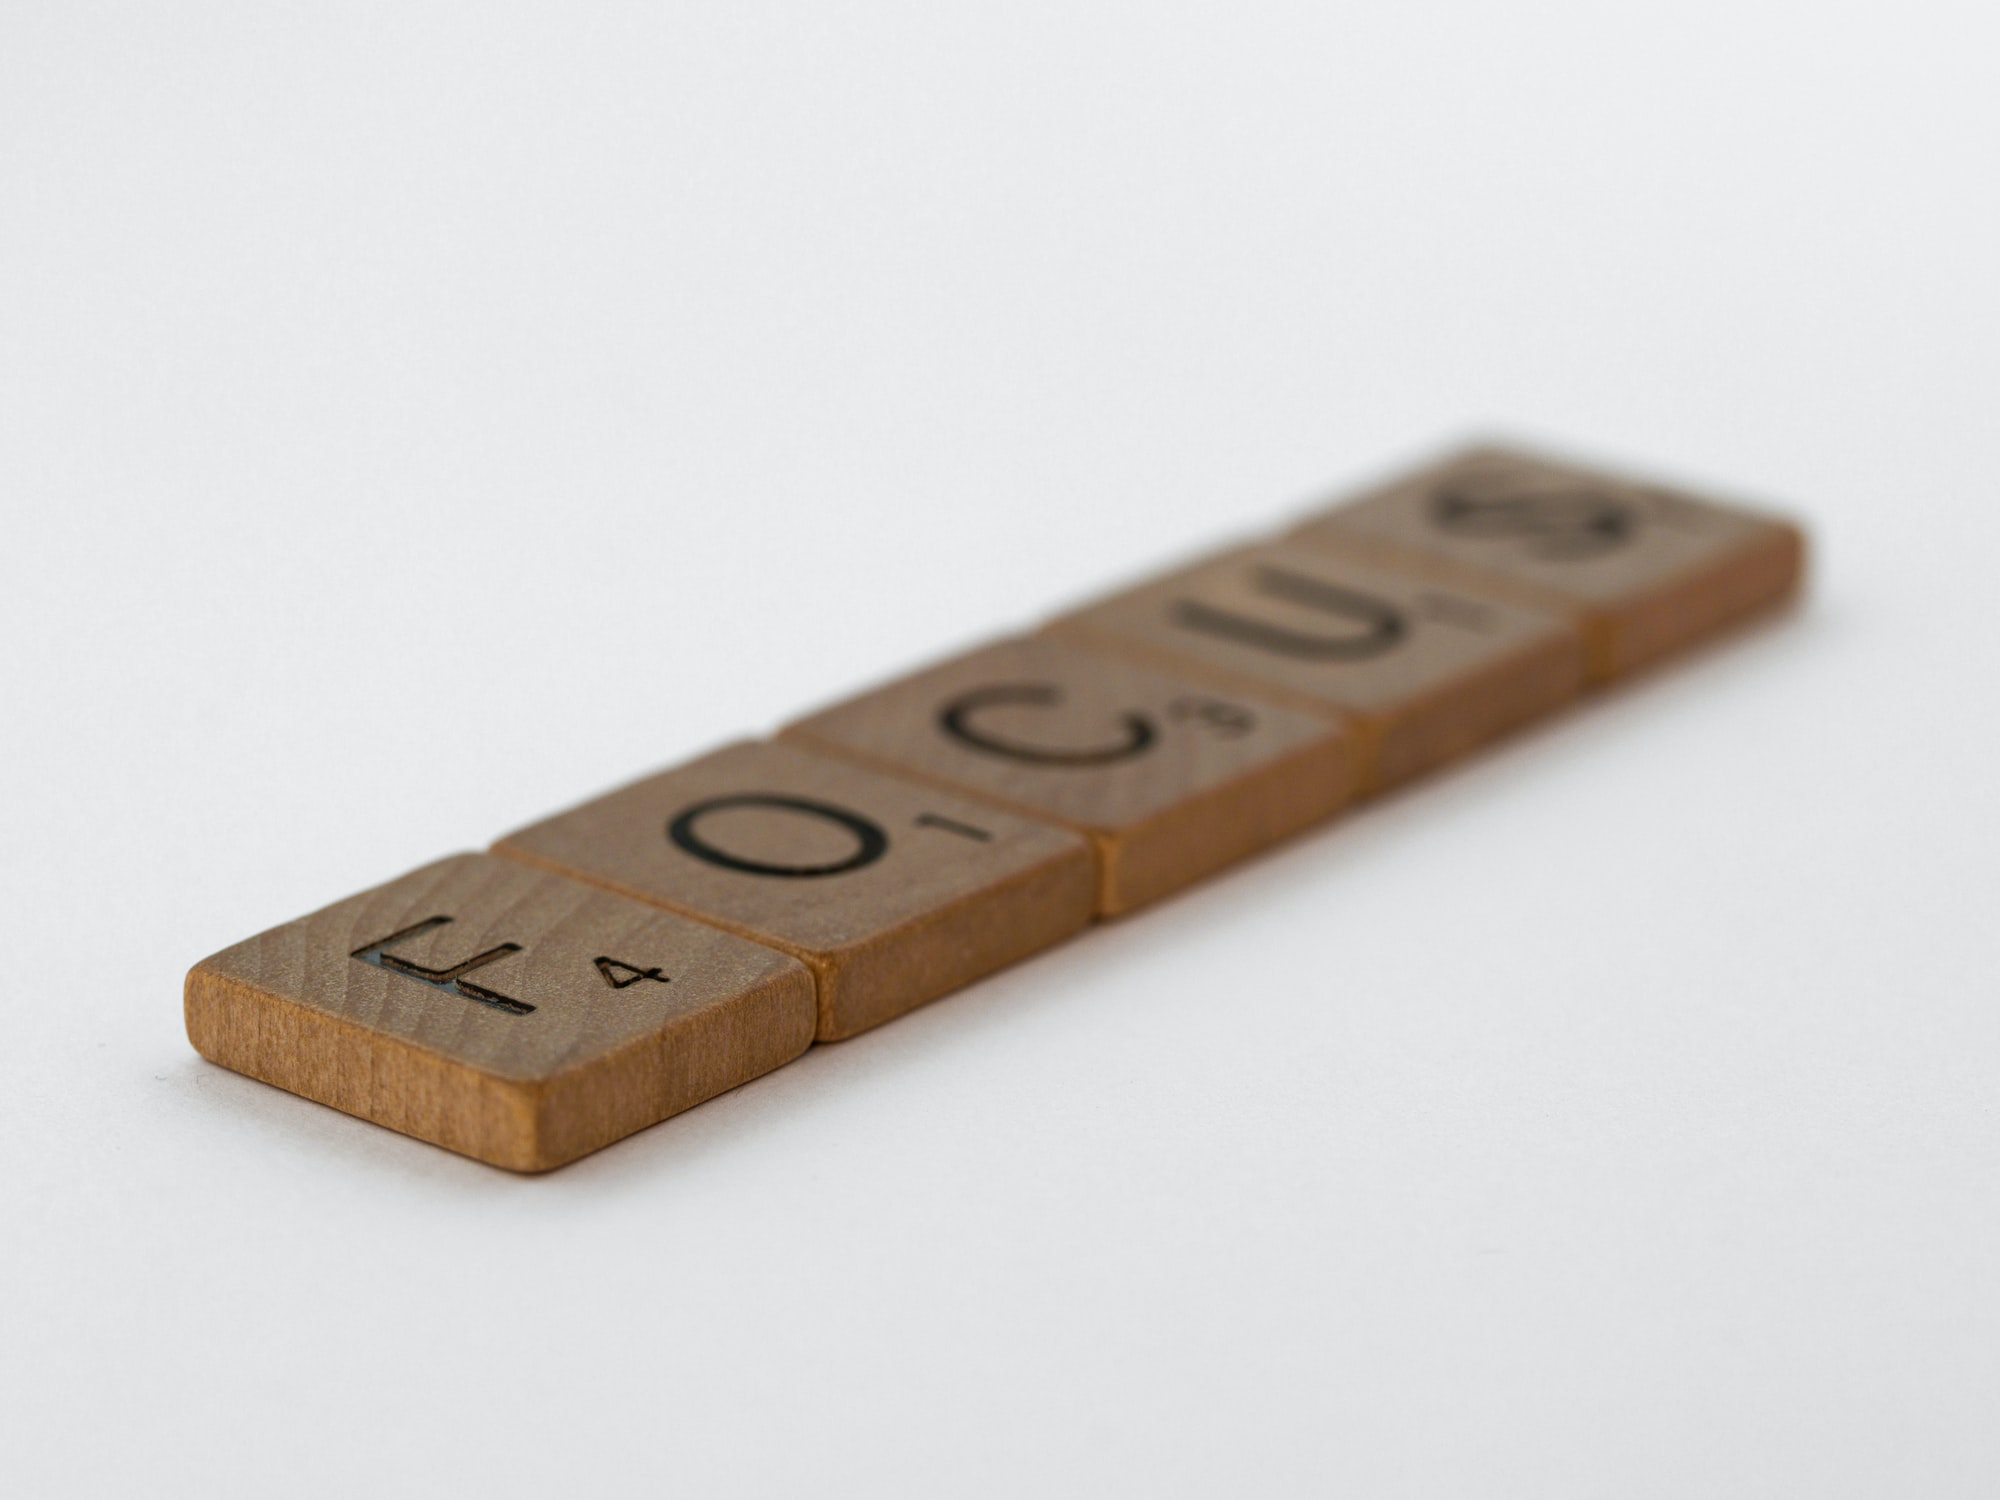 scrabble, scrabble pieces, lettering, letters, wood, scrabble tiles, white background, words, quote, letters, type, typography, design, layout, focus, bokeh, blur, camera, photography, images, image,